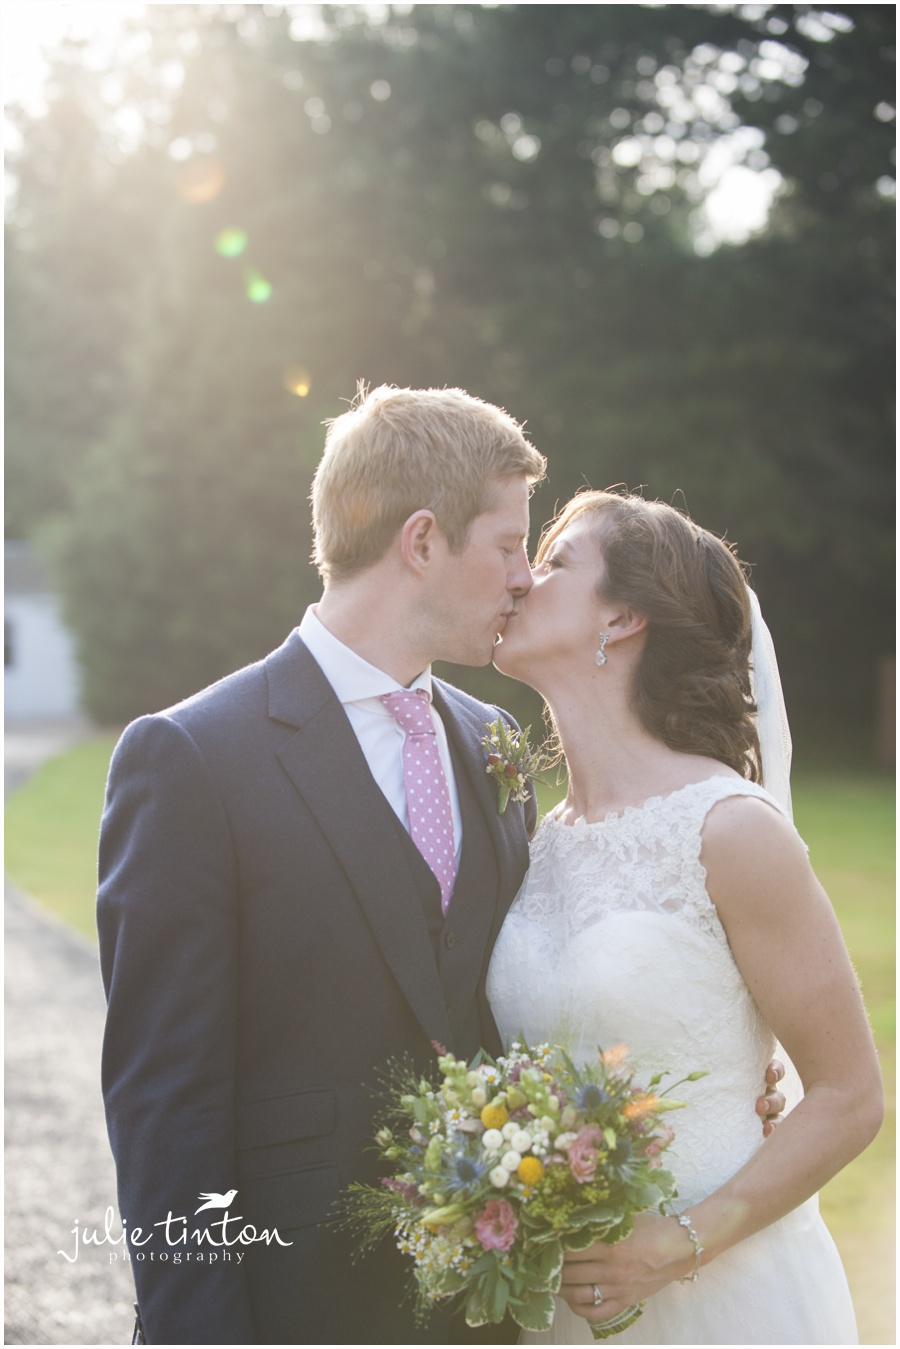 Glencorse House Wedding soft light golden hour